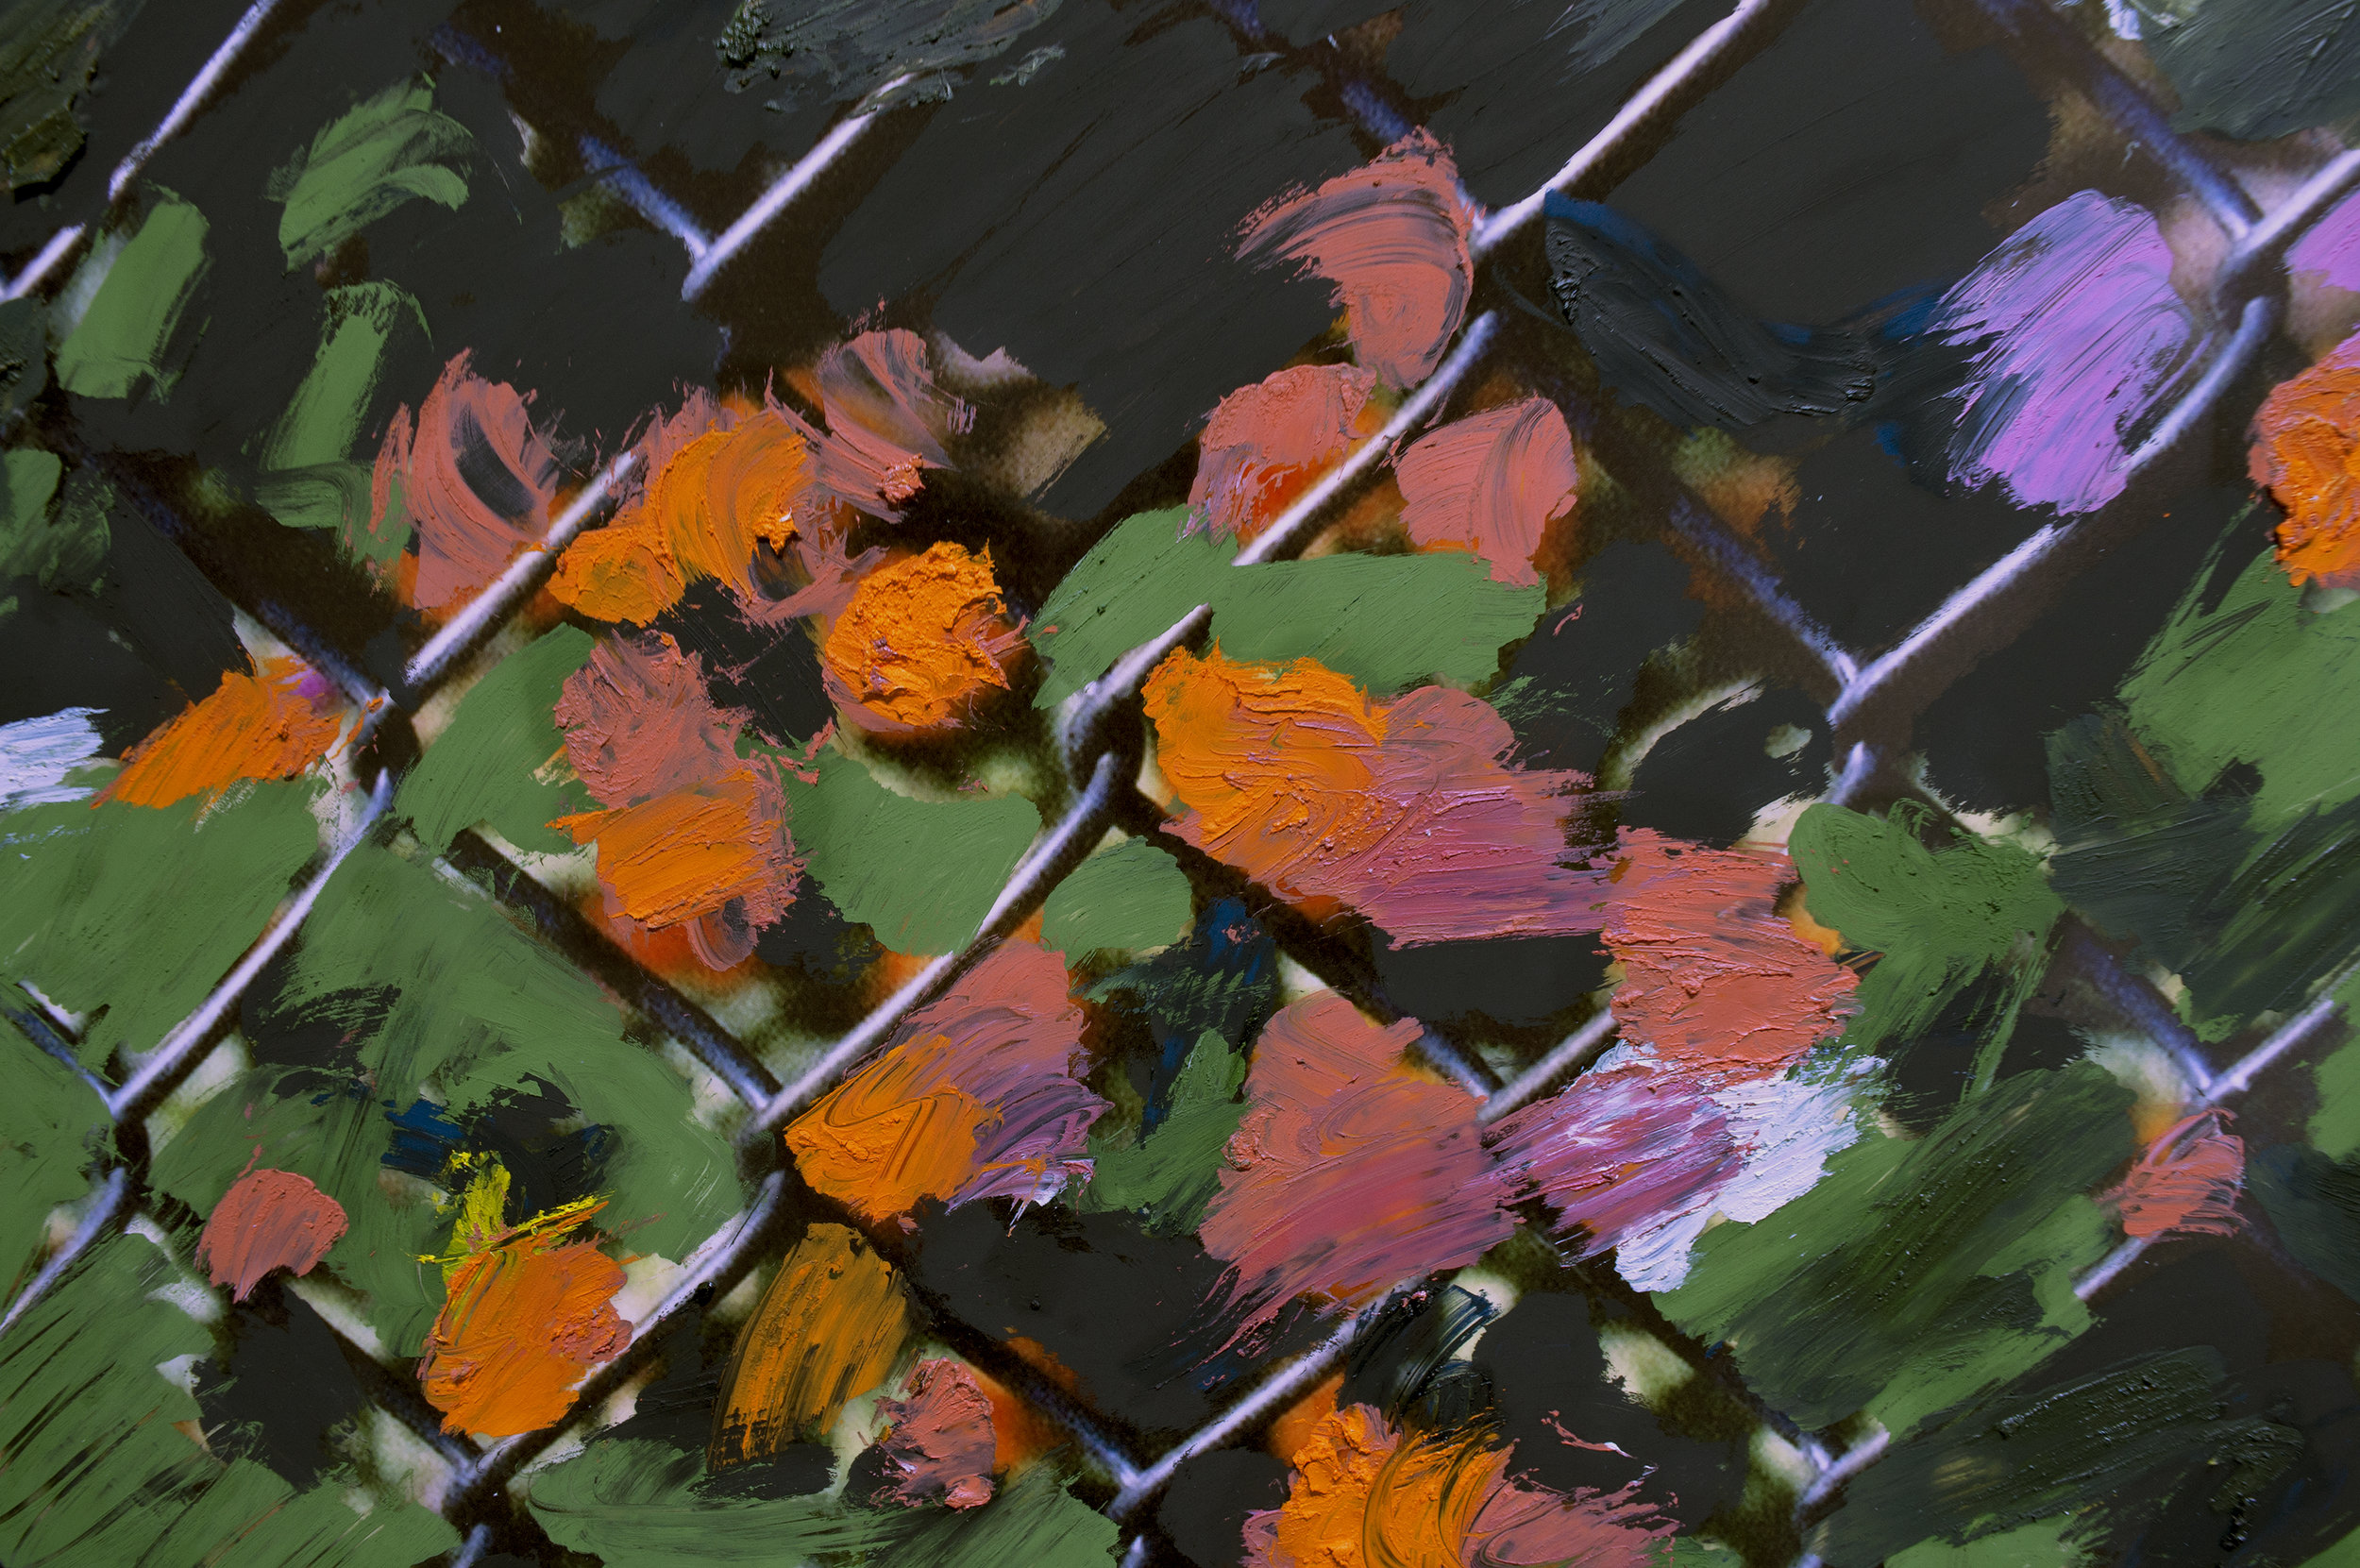 PAS_untitled(fence3)_detail_3000.jpg